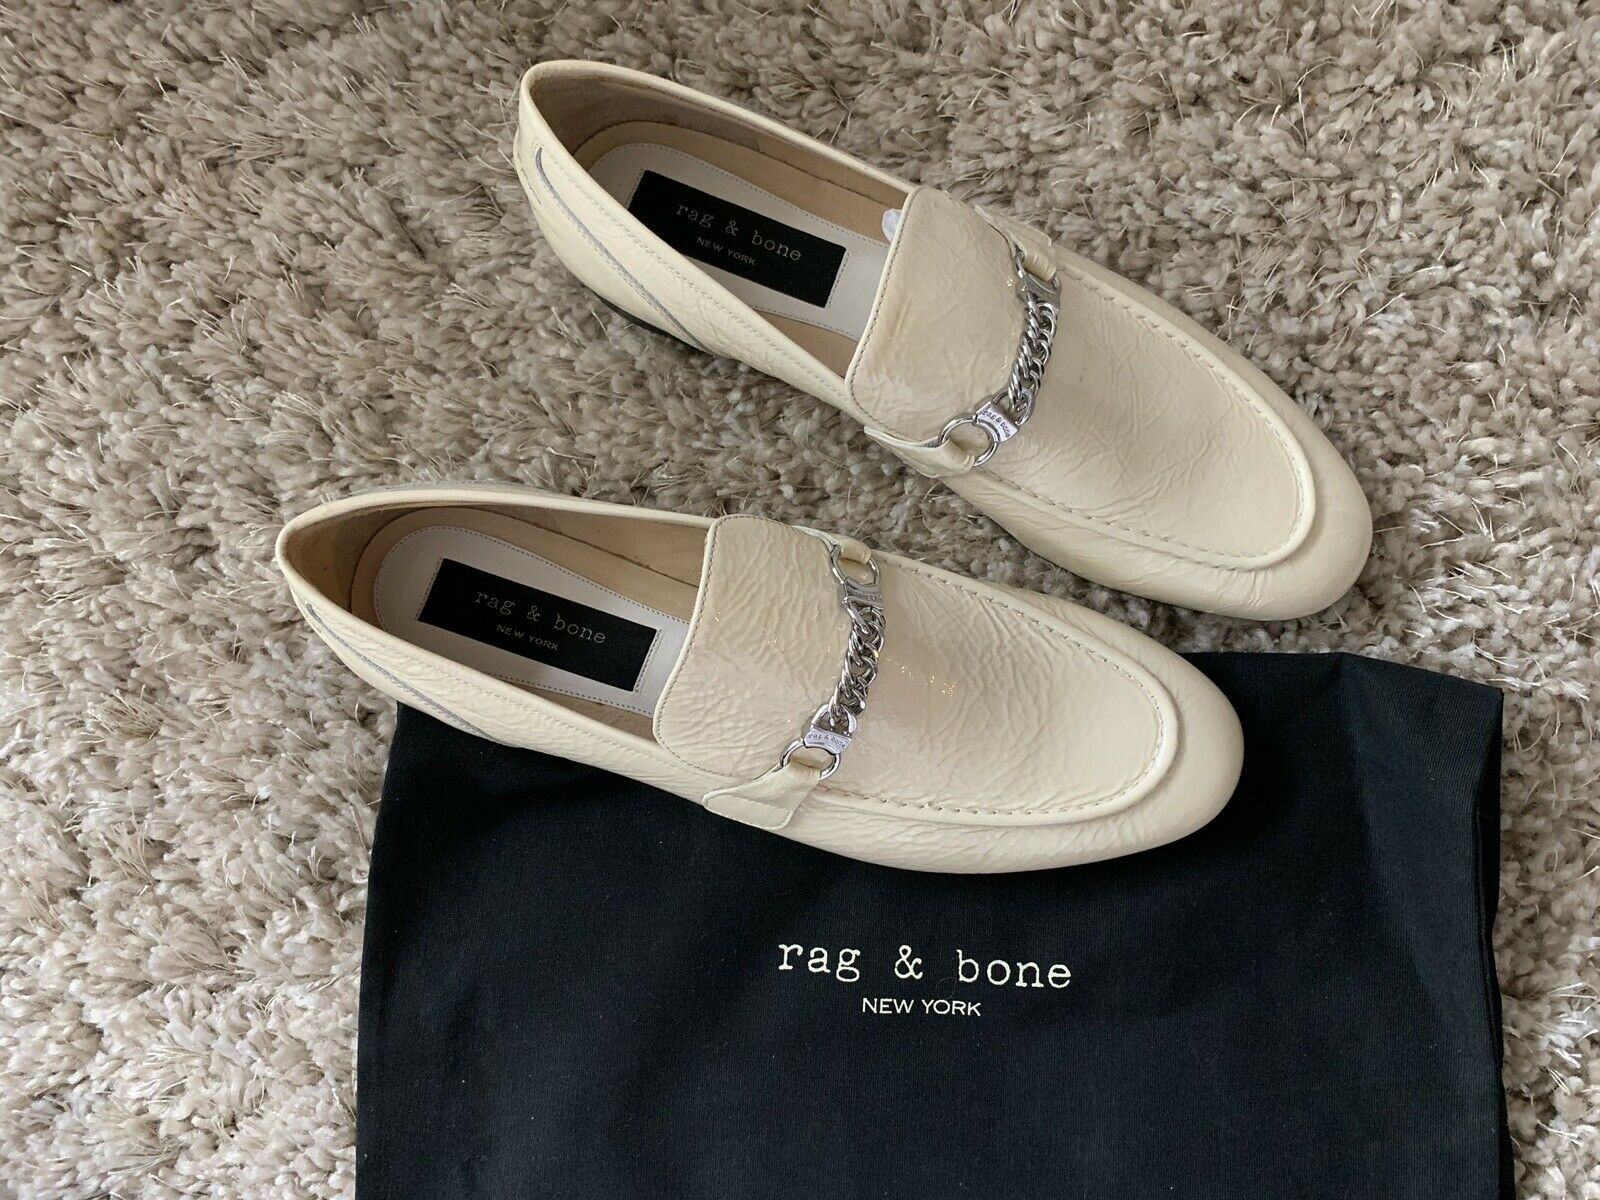 NIB Rag & Bone Patent Leather Loafer sautope Dimensione 40 Cream Loafers US Sz 10